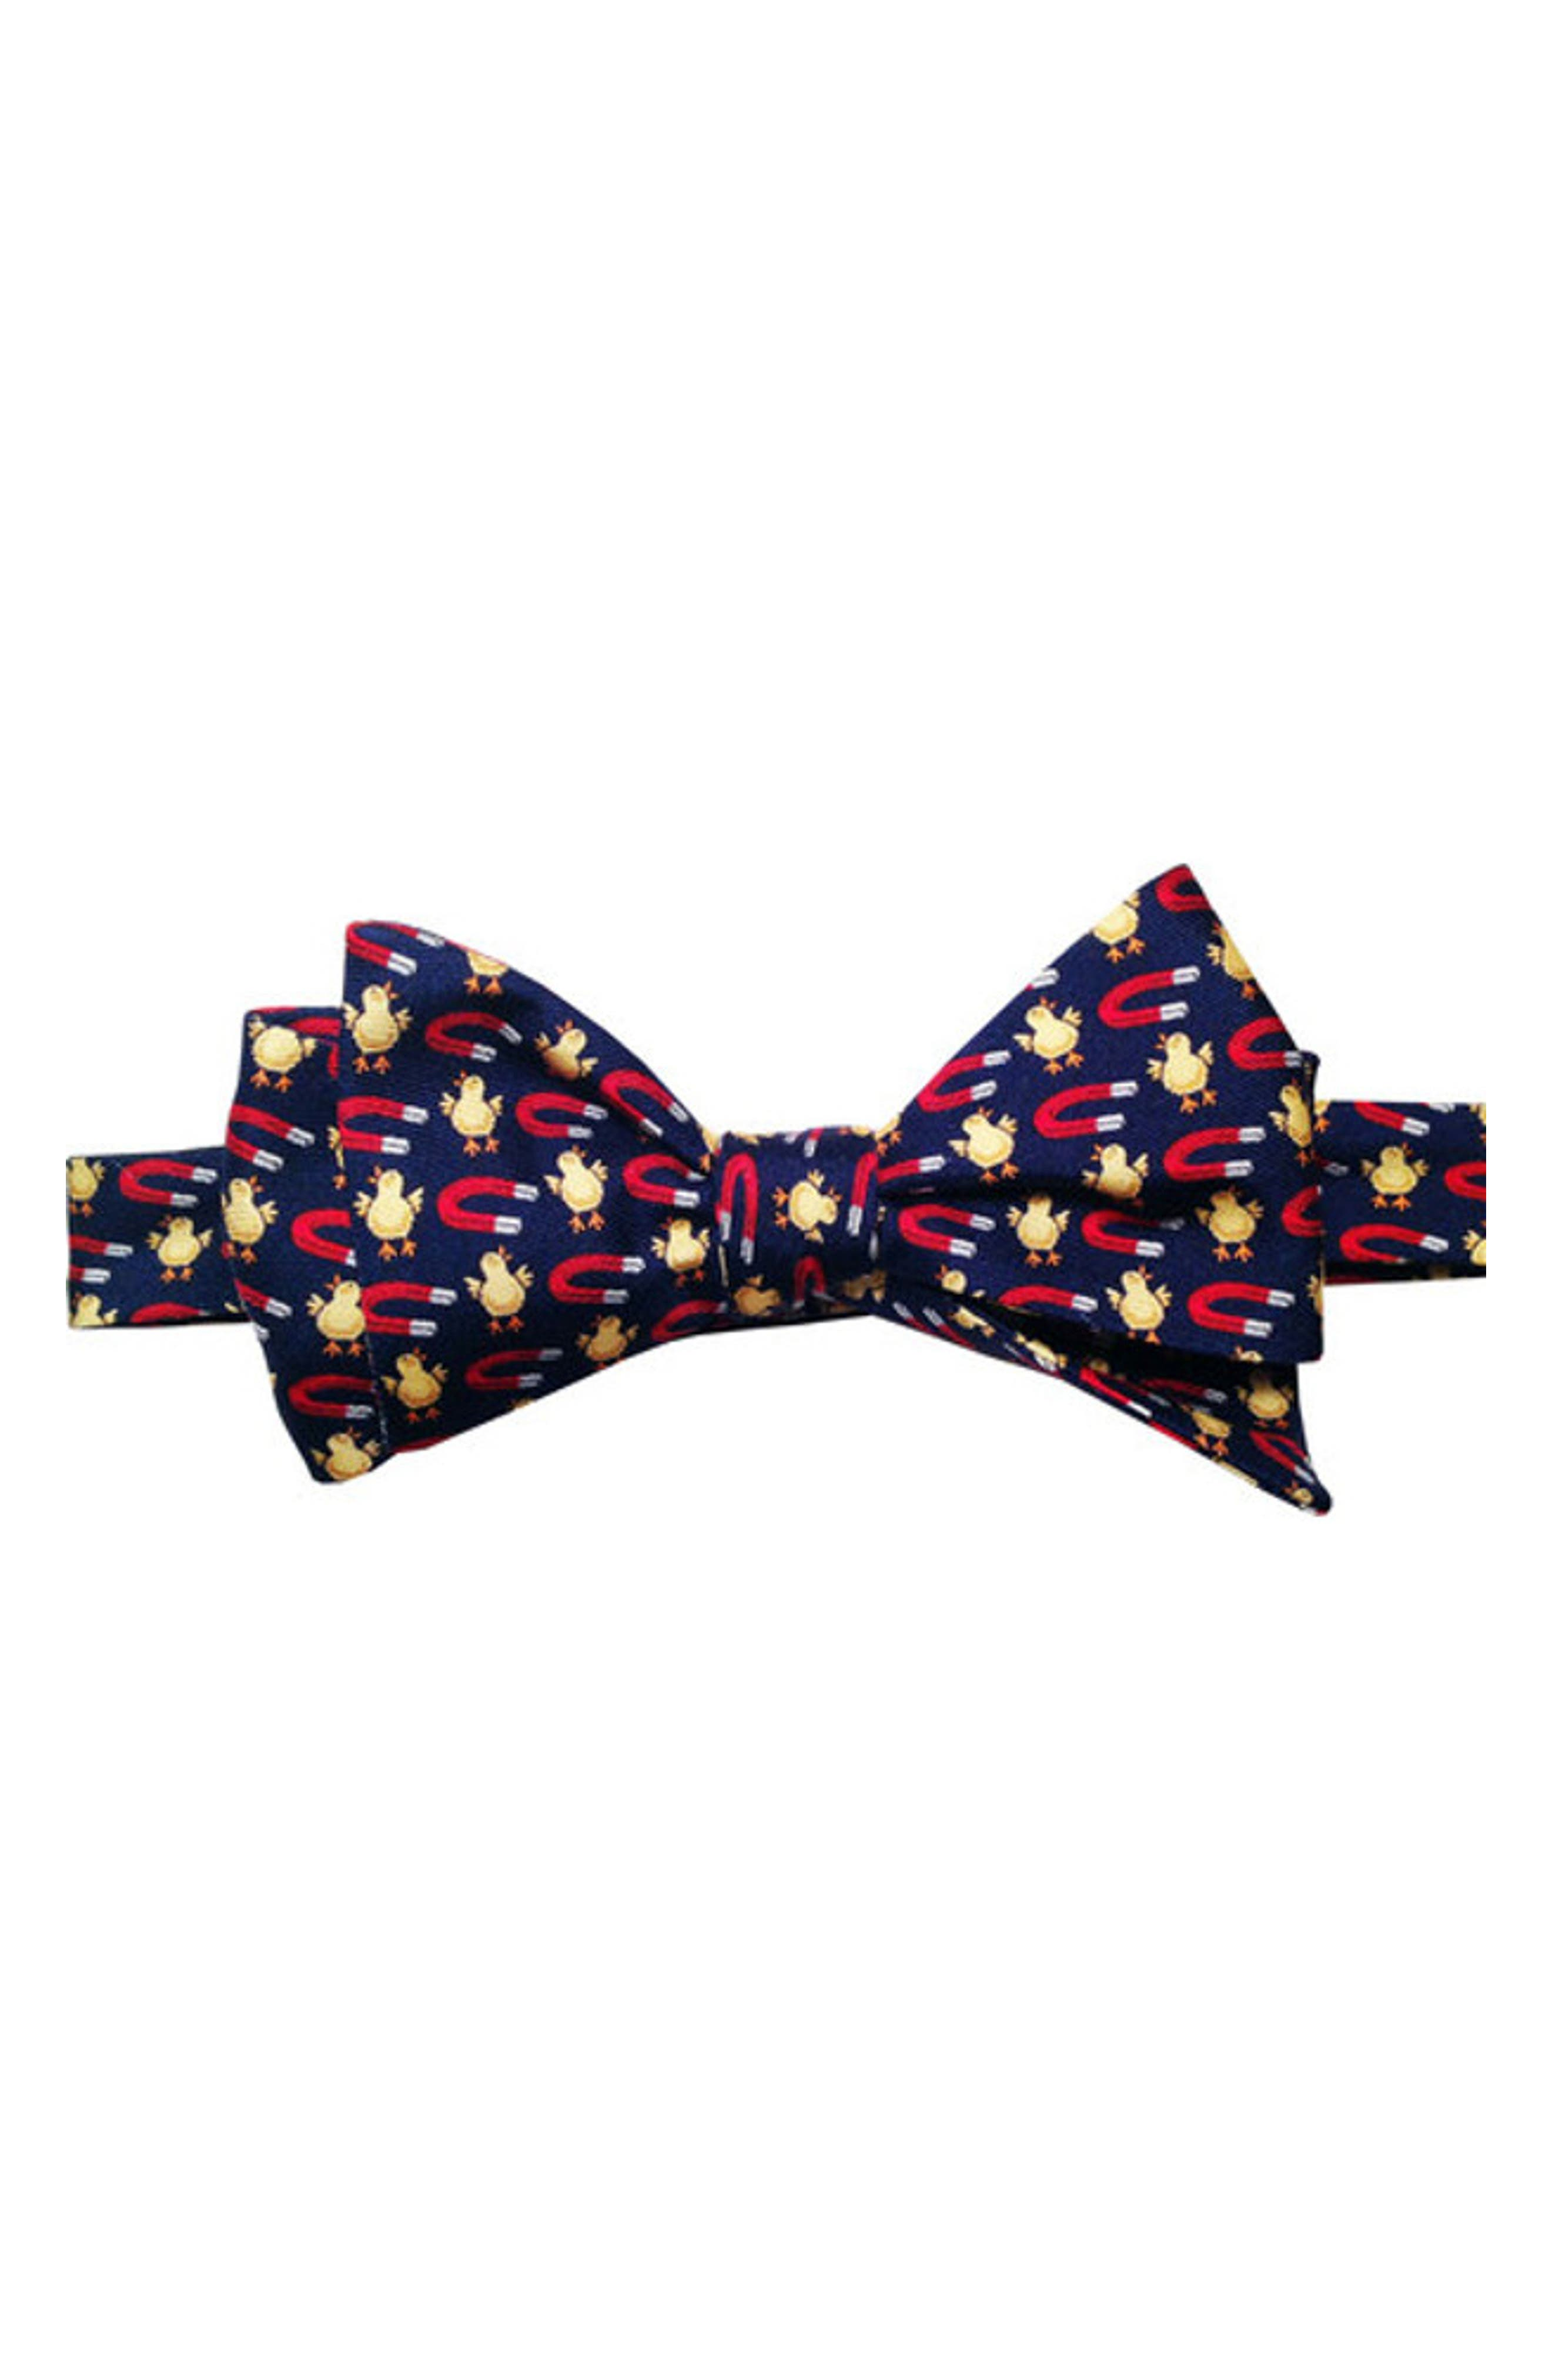 Chick Magnet Silk Bow Tie,                         Main,                         color, Navy